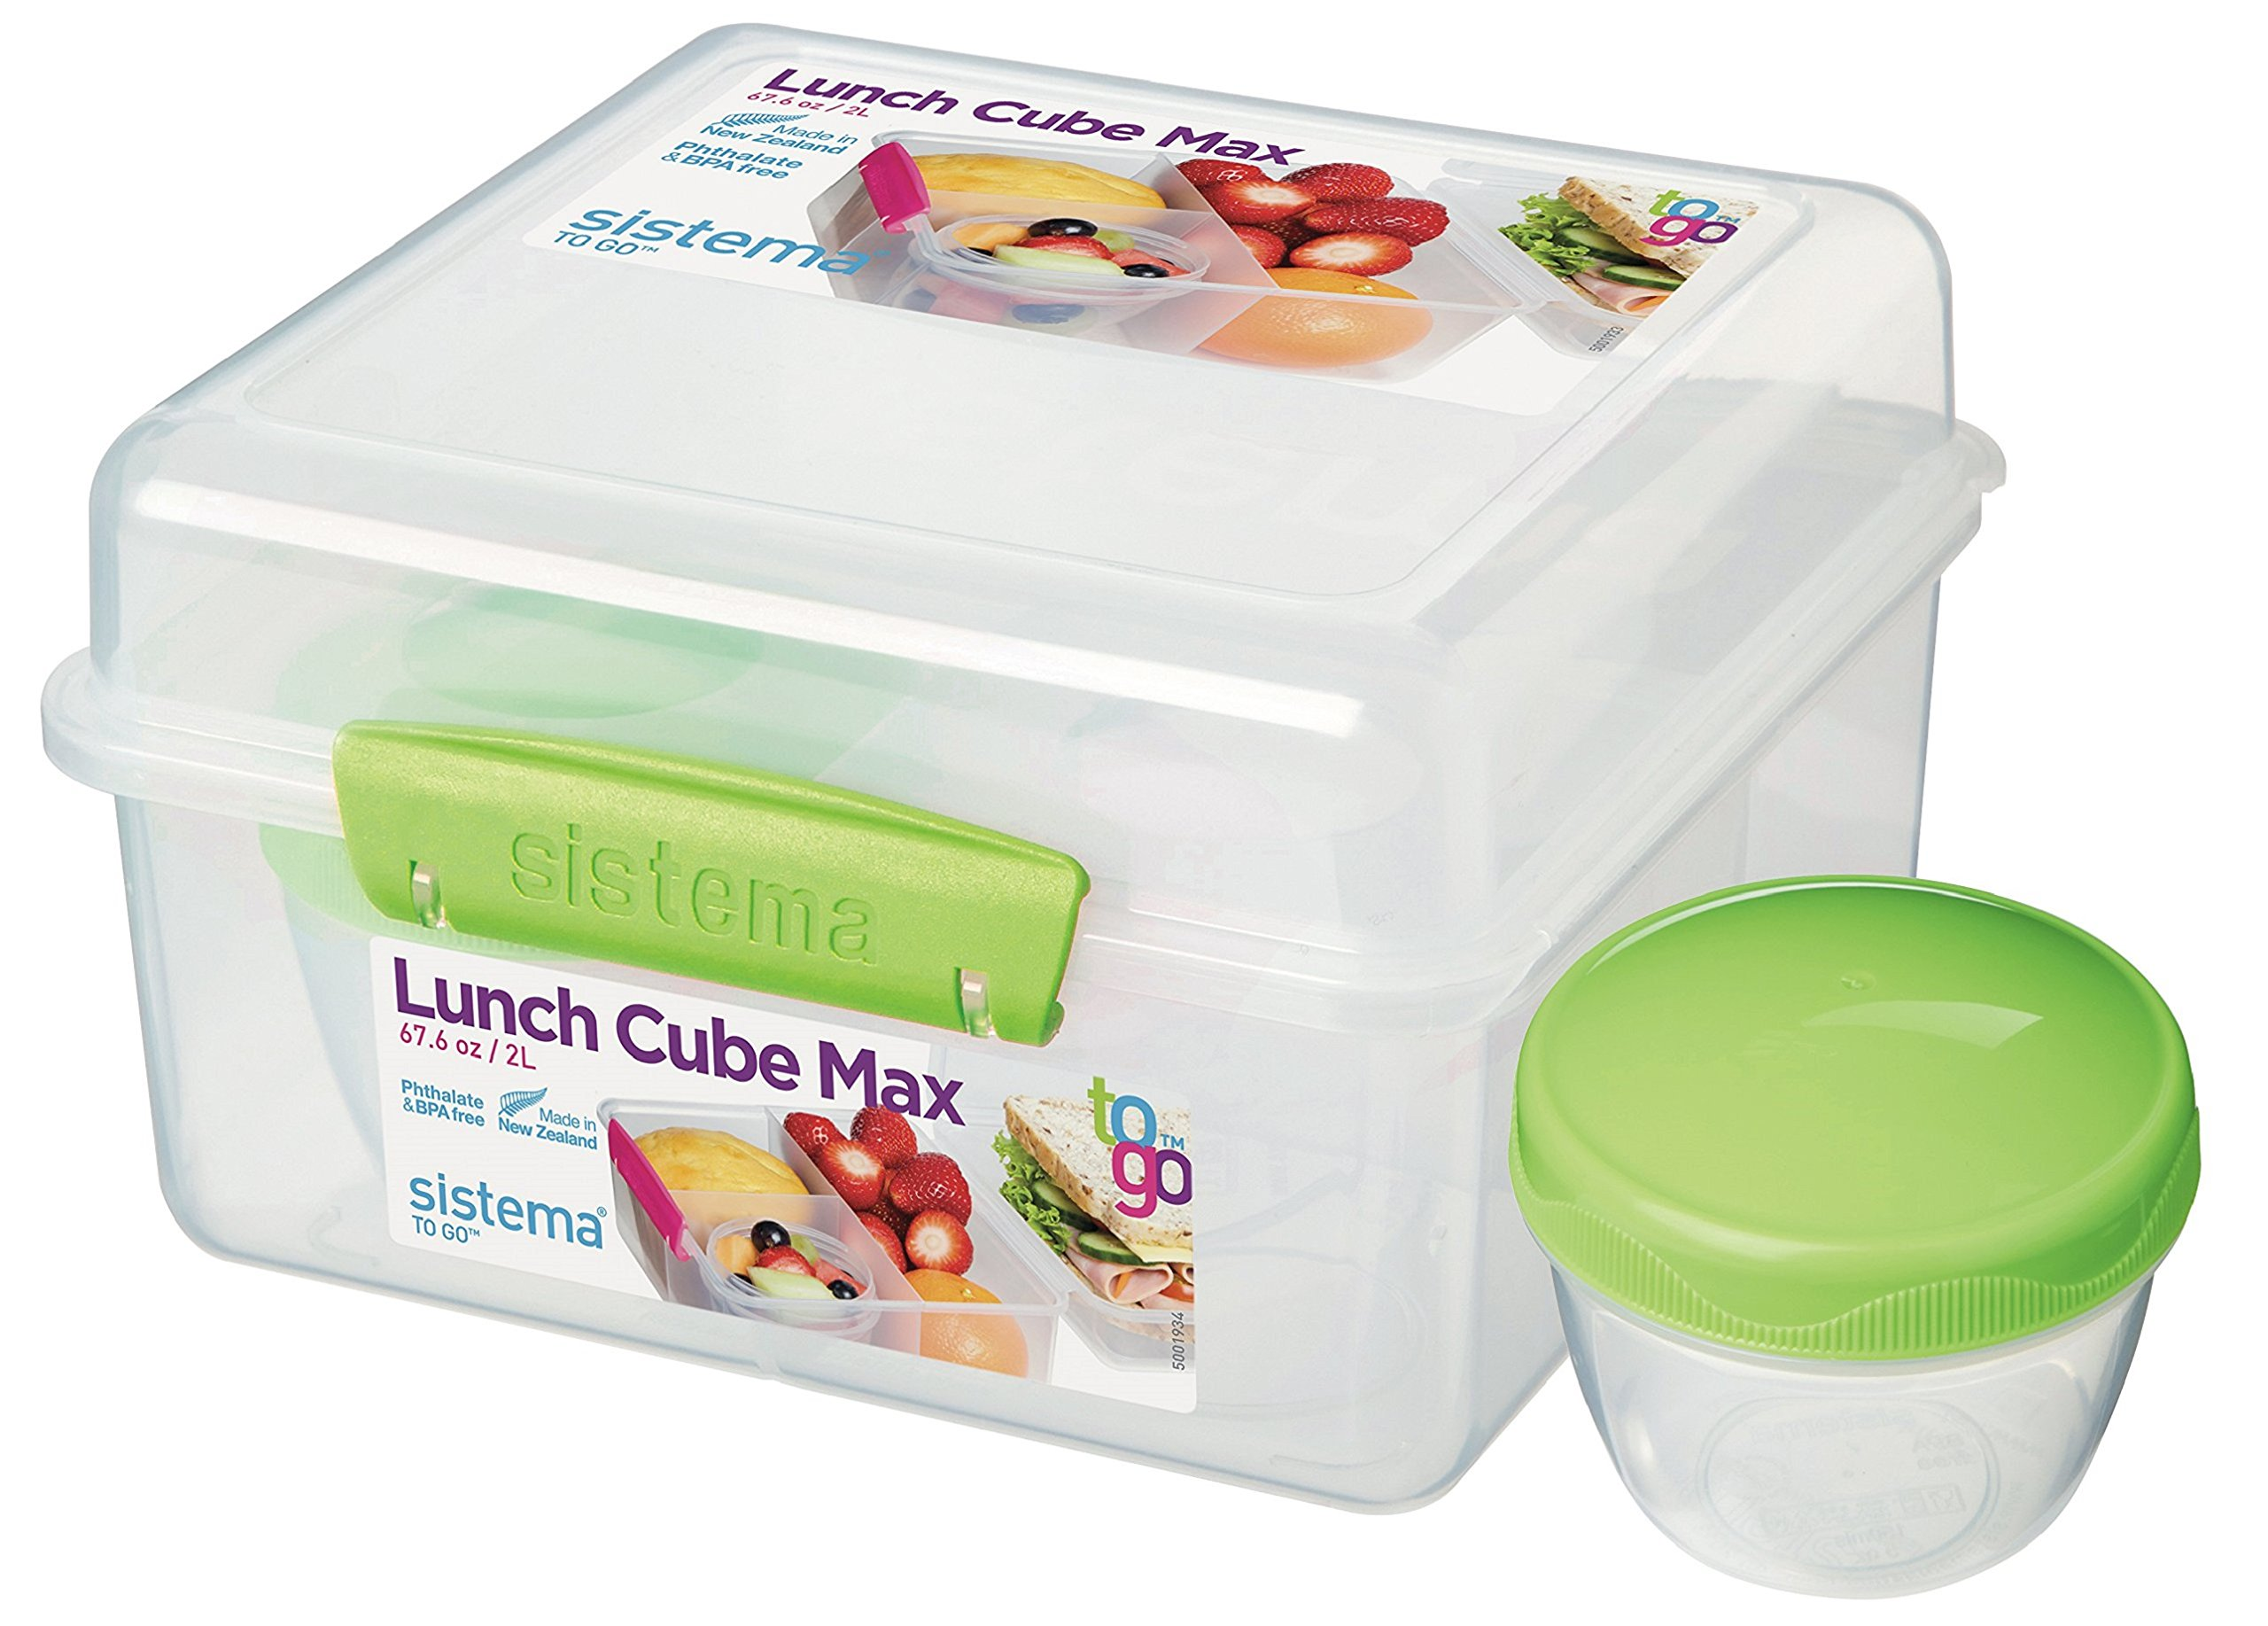 21745 Lunch Cube Max To Go